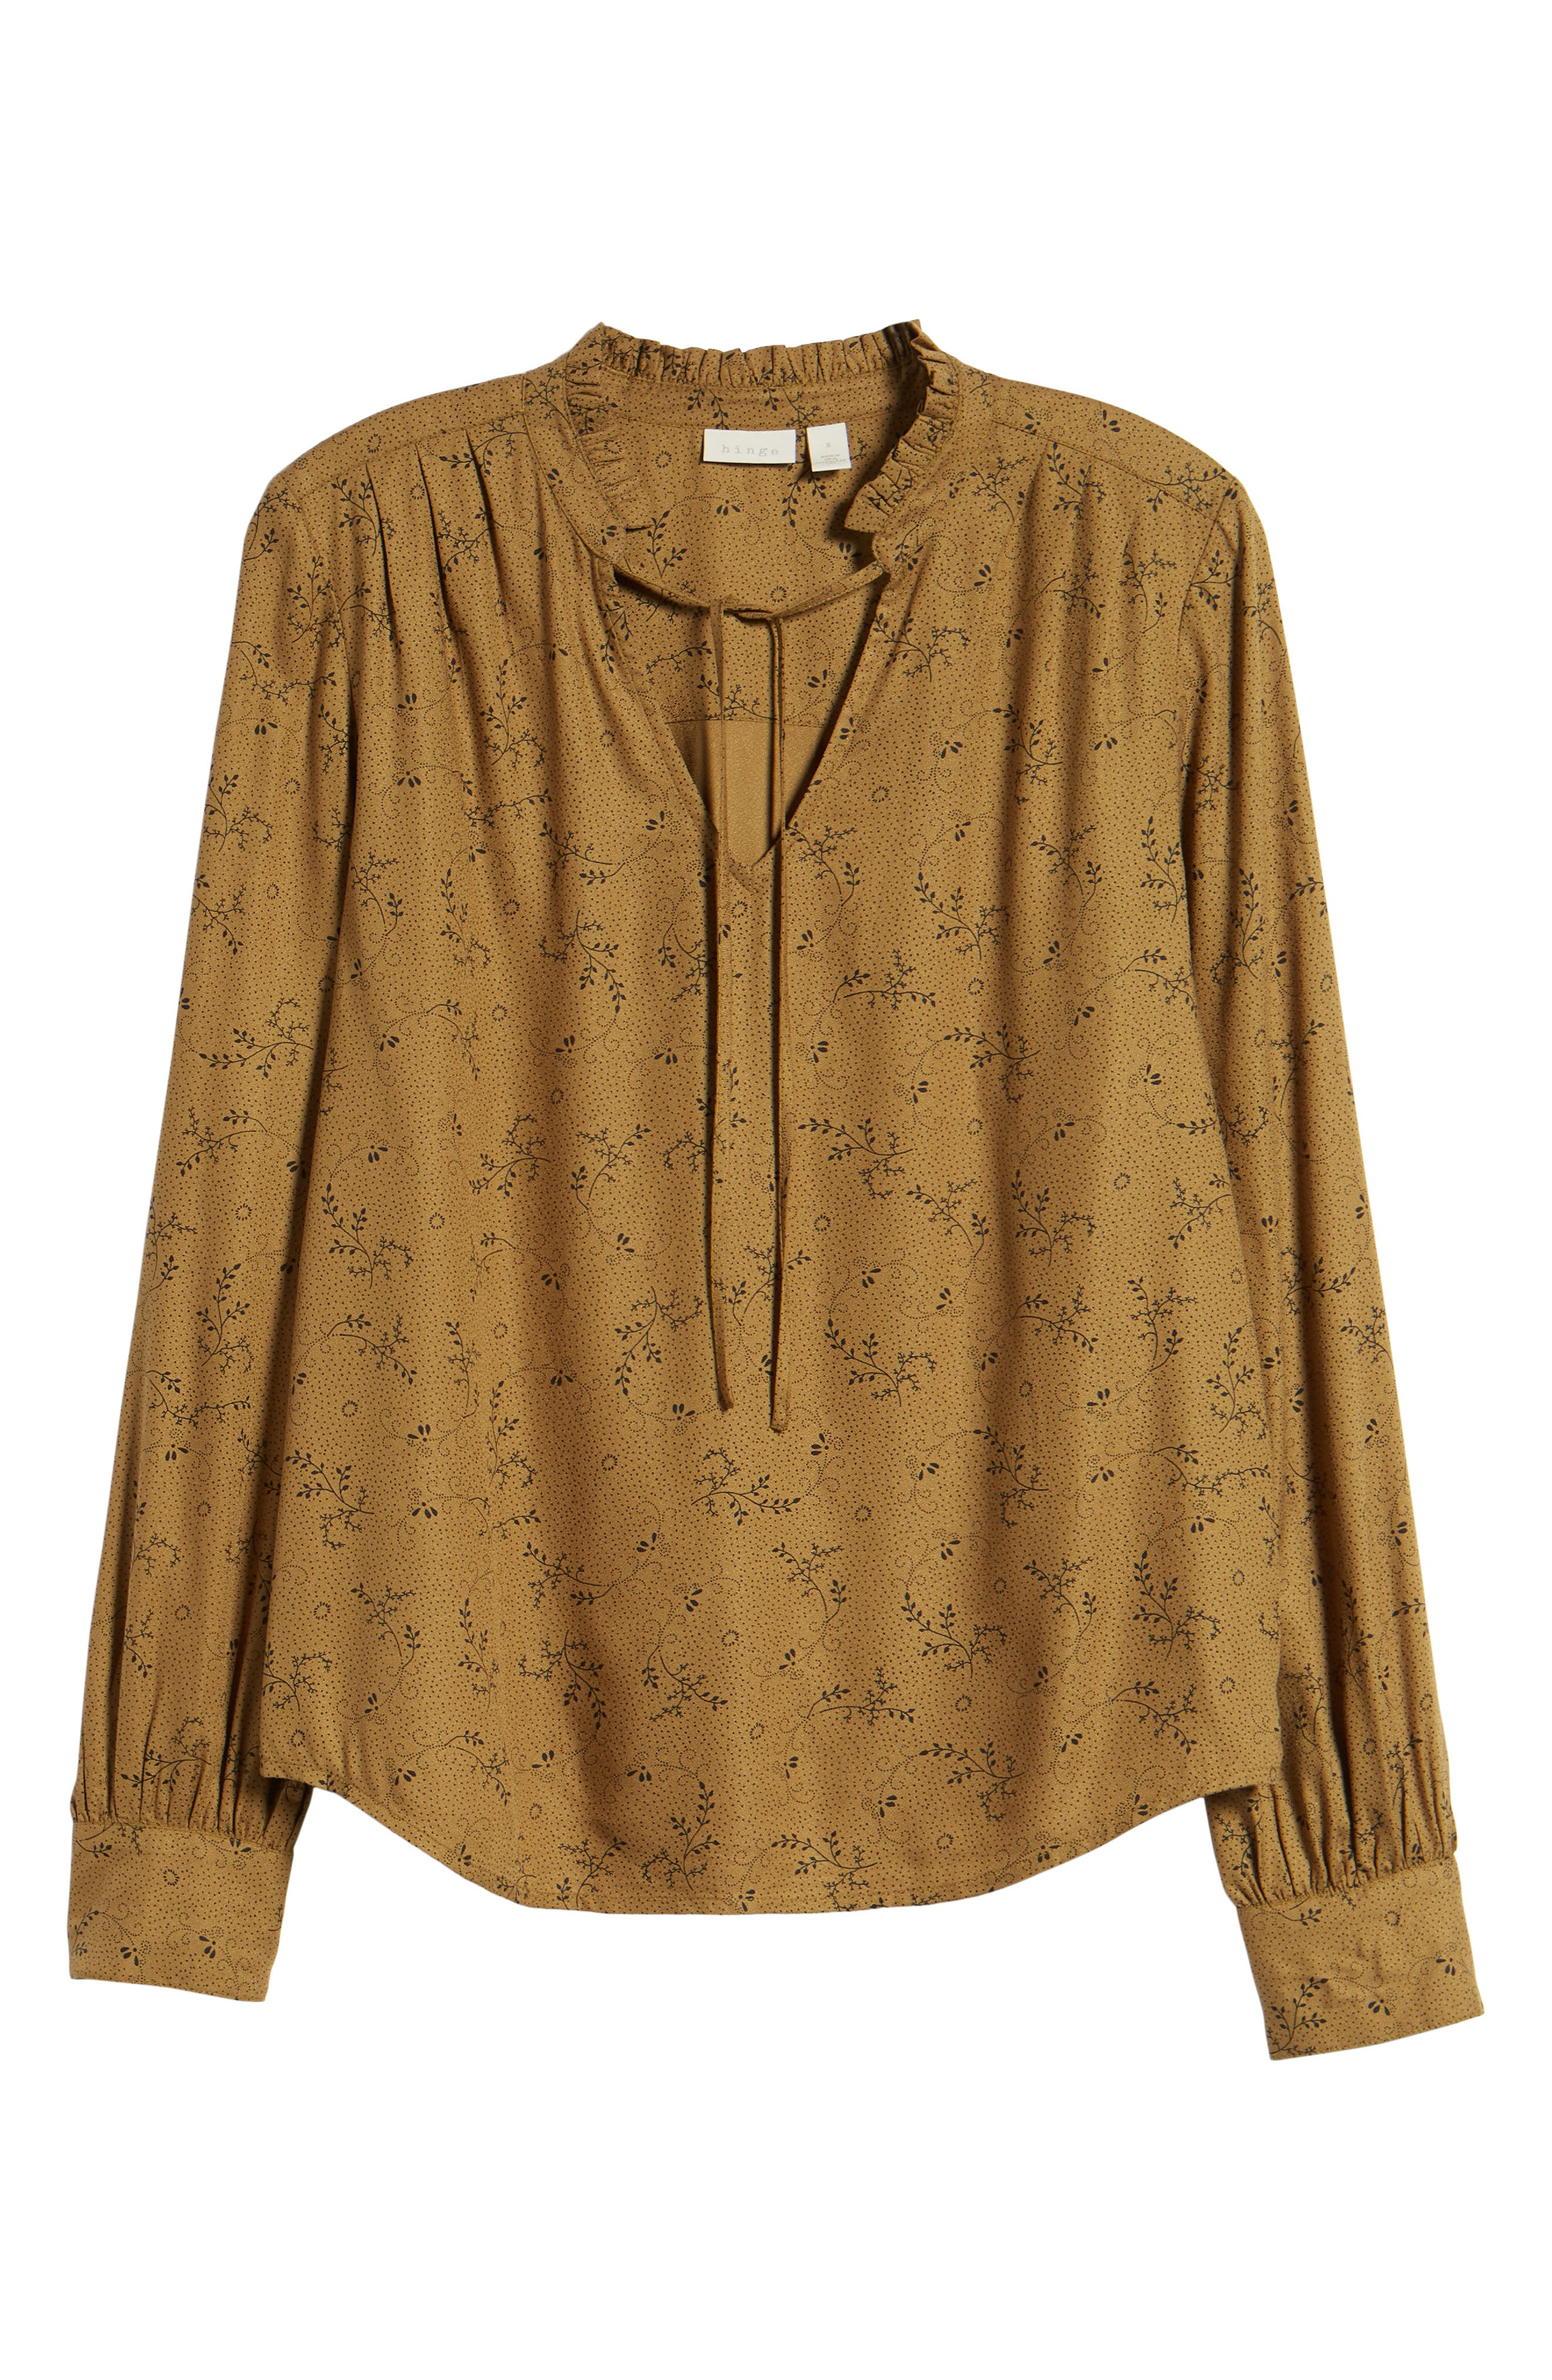 Ruffle V-Neck Blouse,                             Alternate thumbnail 7, color,                             Olive Breen Dotted Sprigs